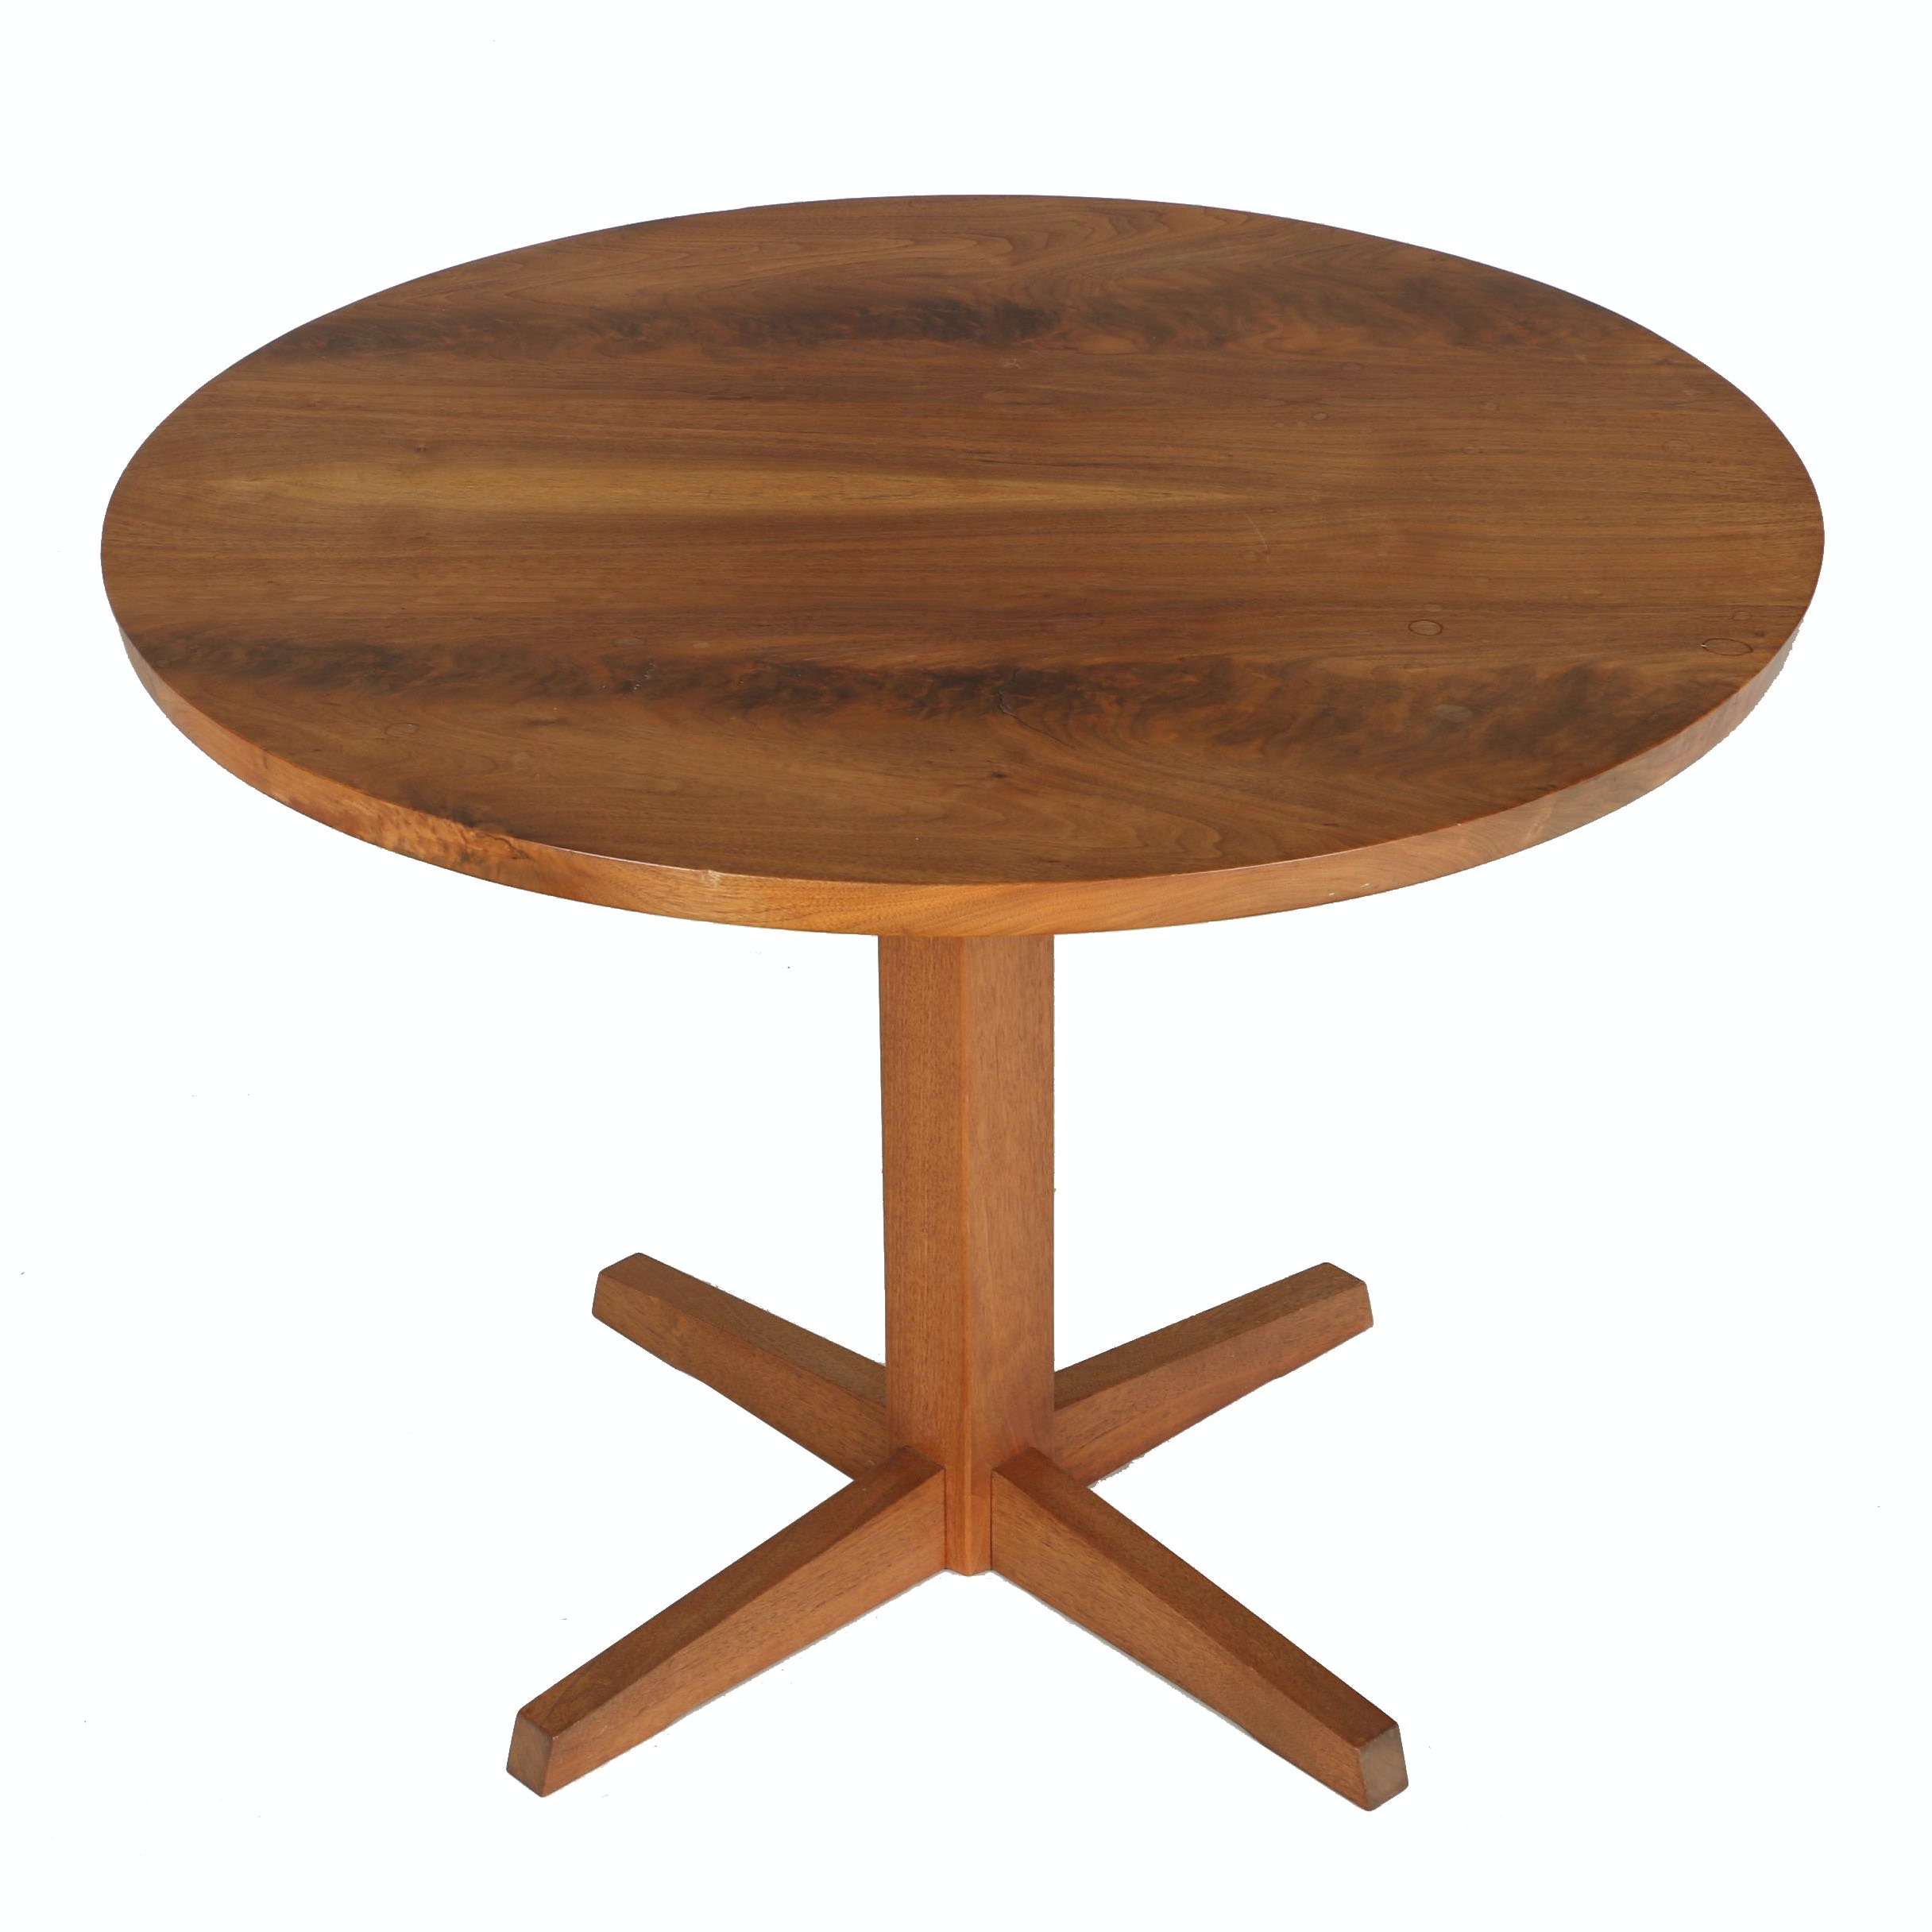 Vintage George Nakashima Round Pedestal Table With Provenance